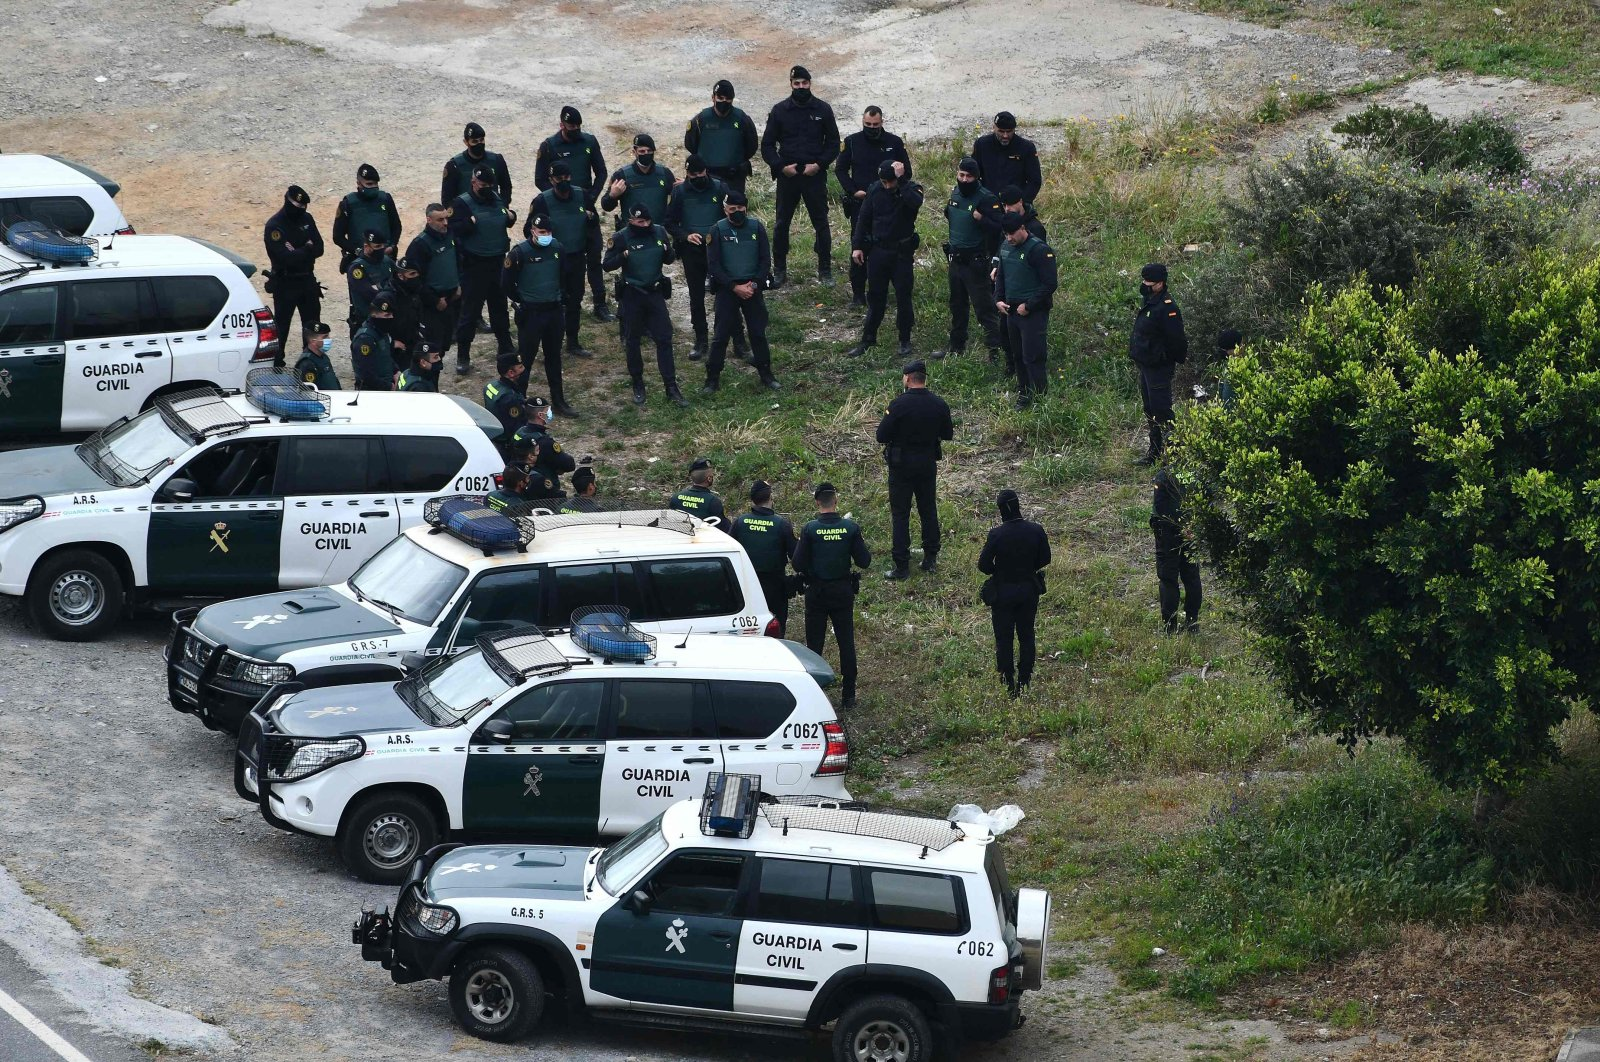 Spanish Guardia Civil members stand guard in the Spanish exclave of Ceuta bordering Morocco, after an attempt by migrants to breach the border fence, April 13, 2021. (AFP)